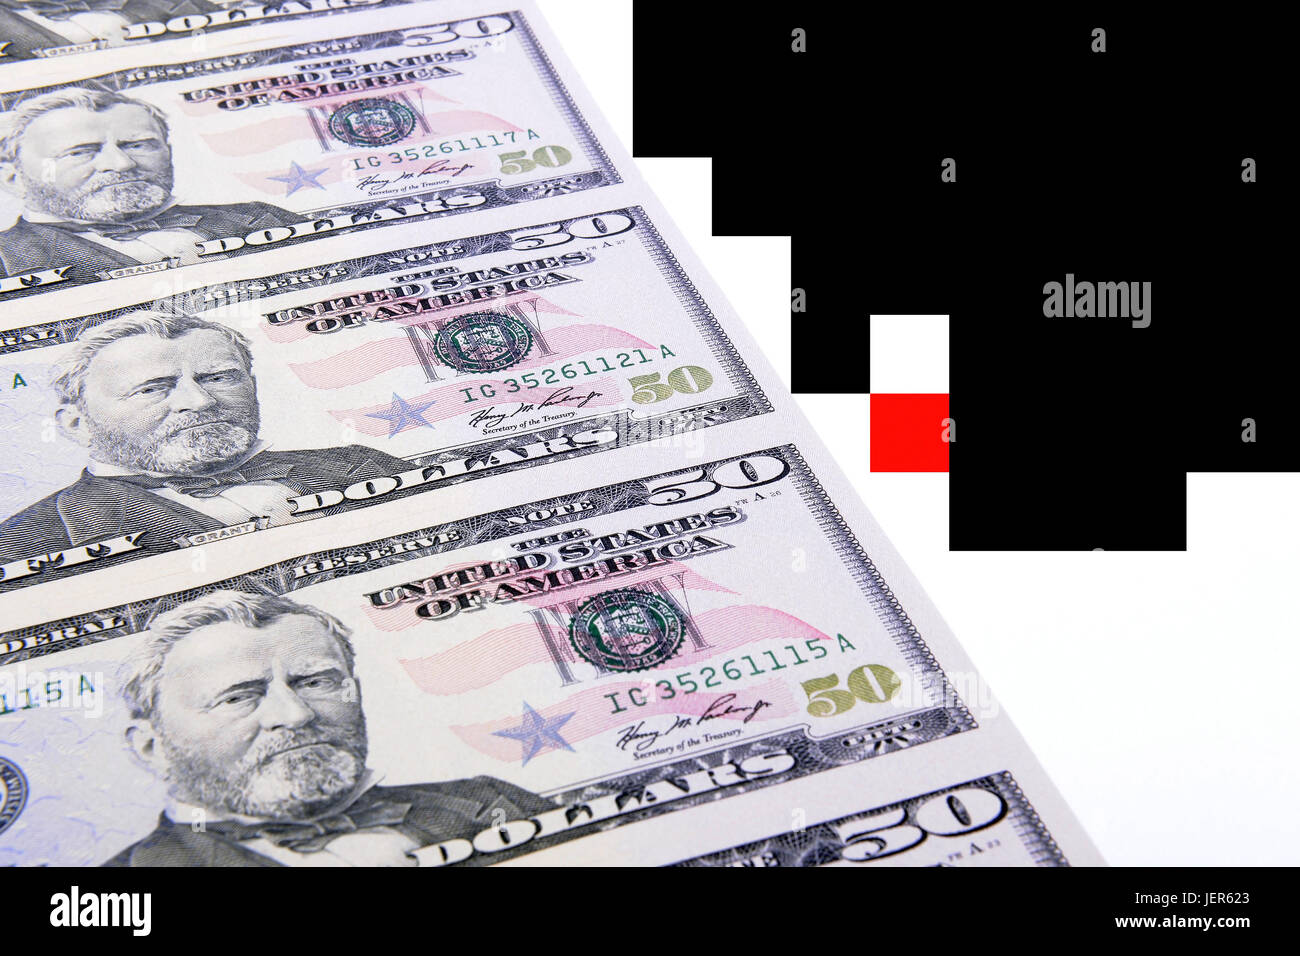 Several 50 dollar notes, Mehrere 50 Dollarscheine Stock Photo